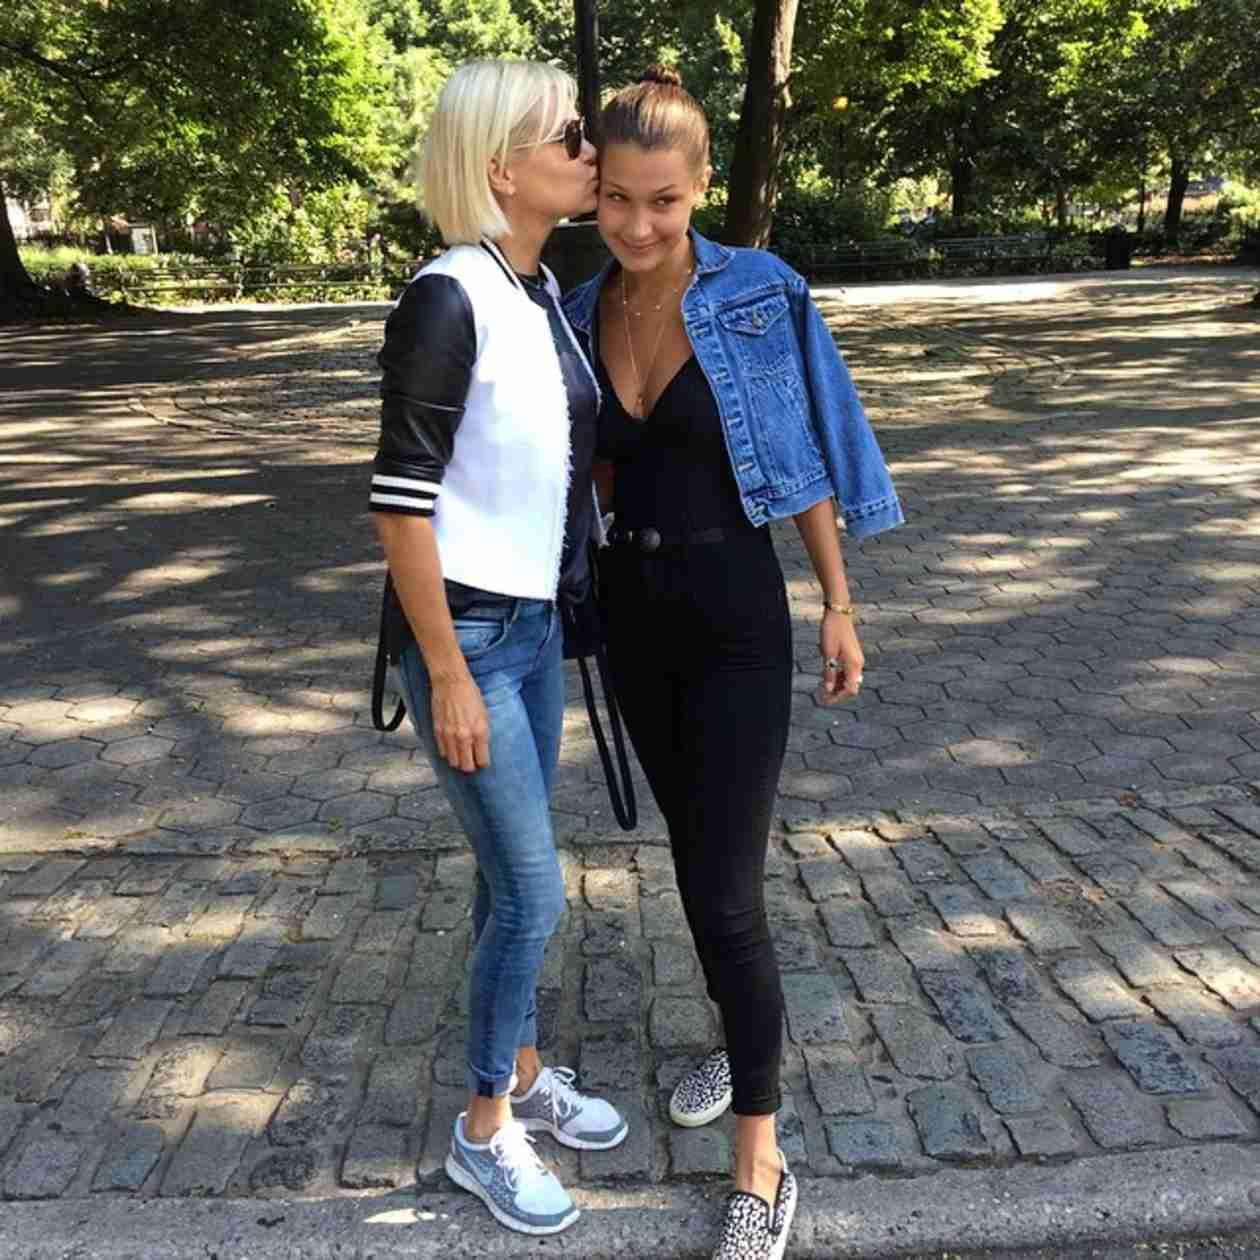 Yolanda Foster Kisses Daughter Bella Hadid Goodbye For College in NYC (PHOTO)